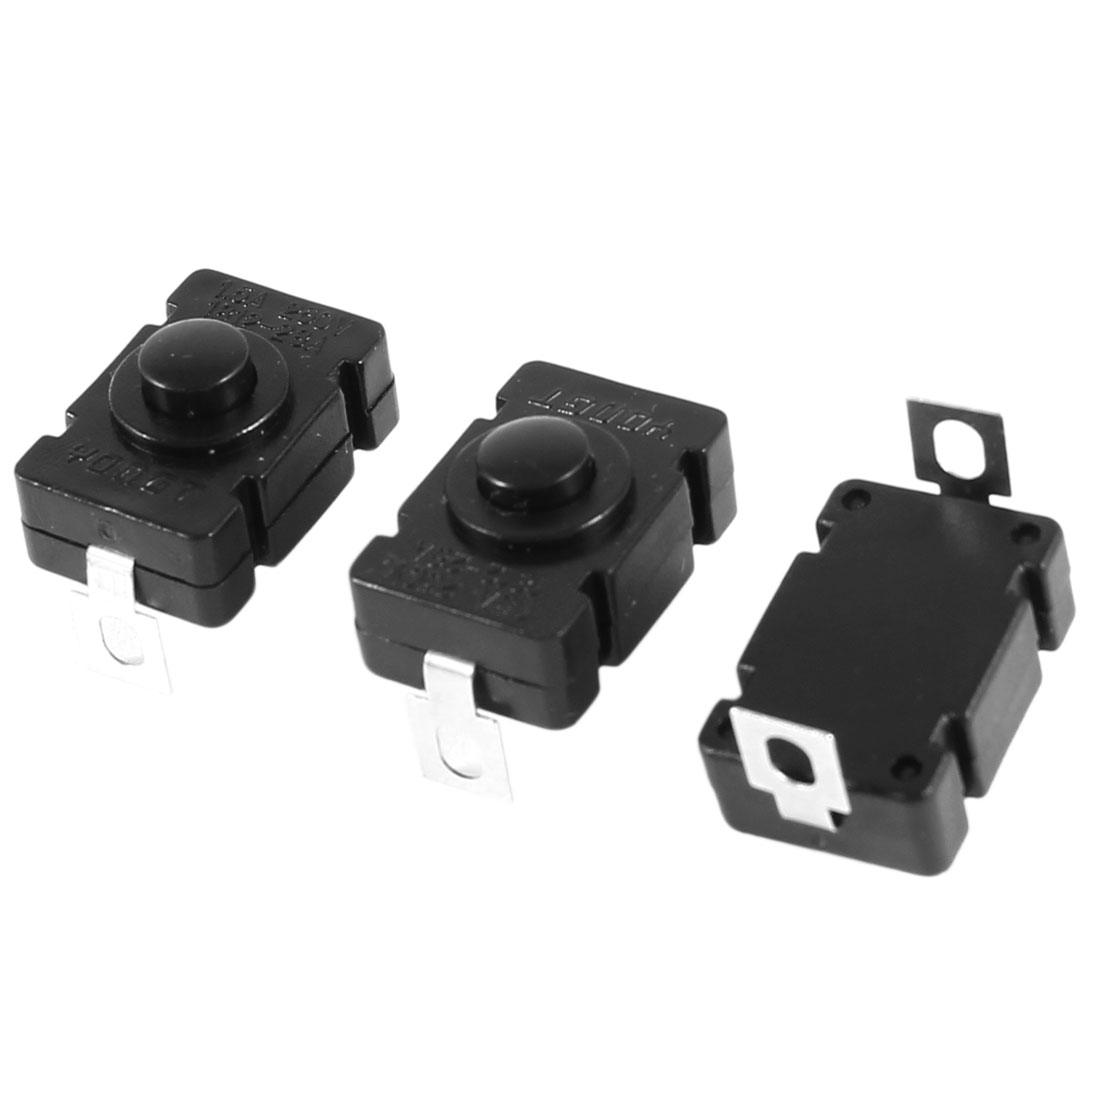 3 Pcs Vertical Latching Rectangular Push Button Switch for Flashlight